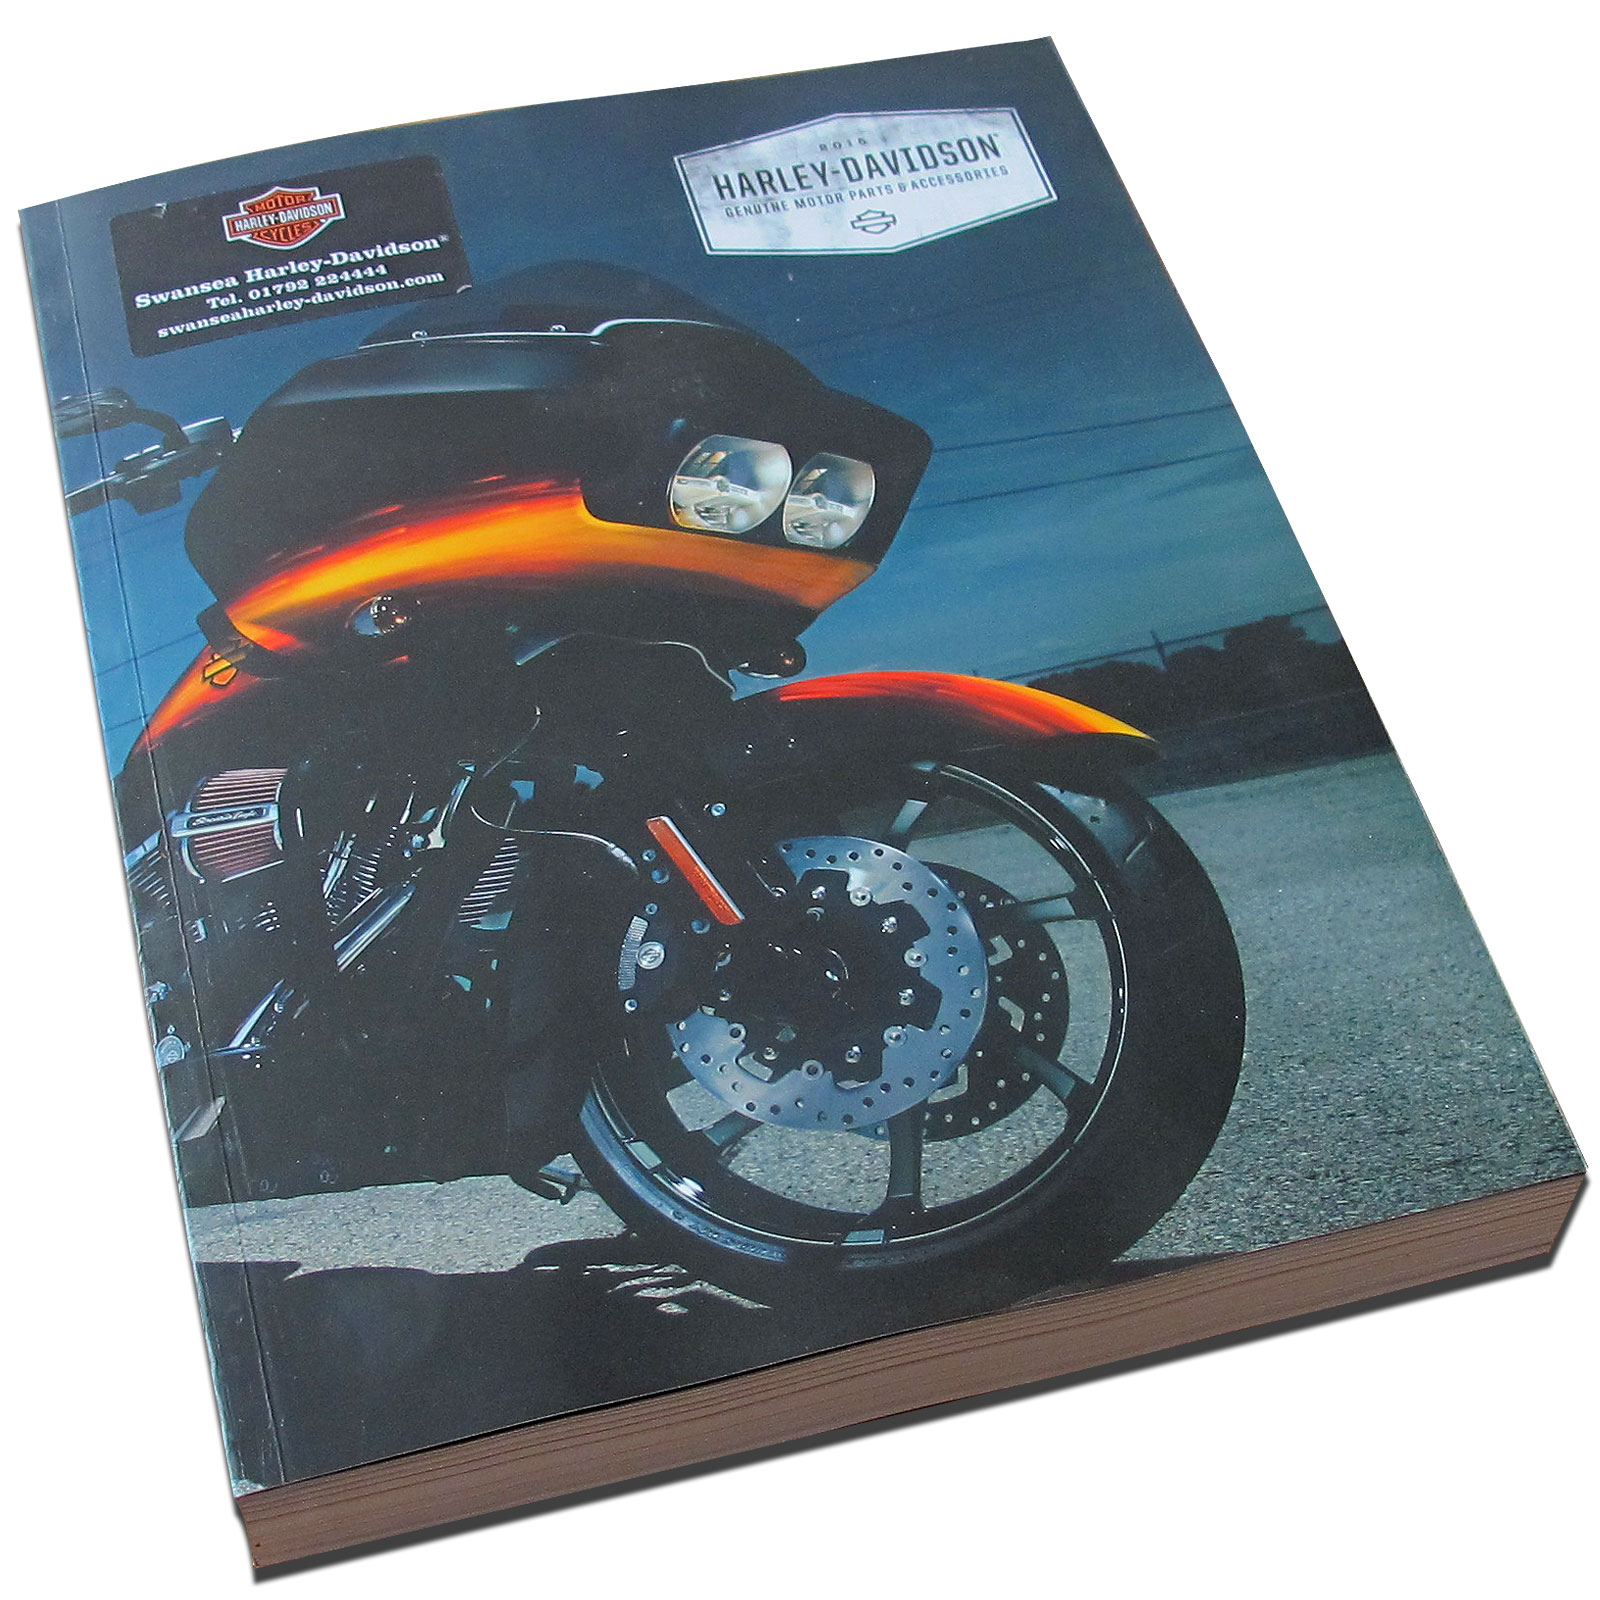 Details about 2015 Harley Davidson Genuine Motor Parts and Accessories